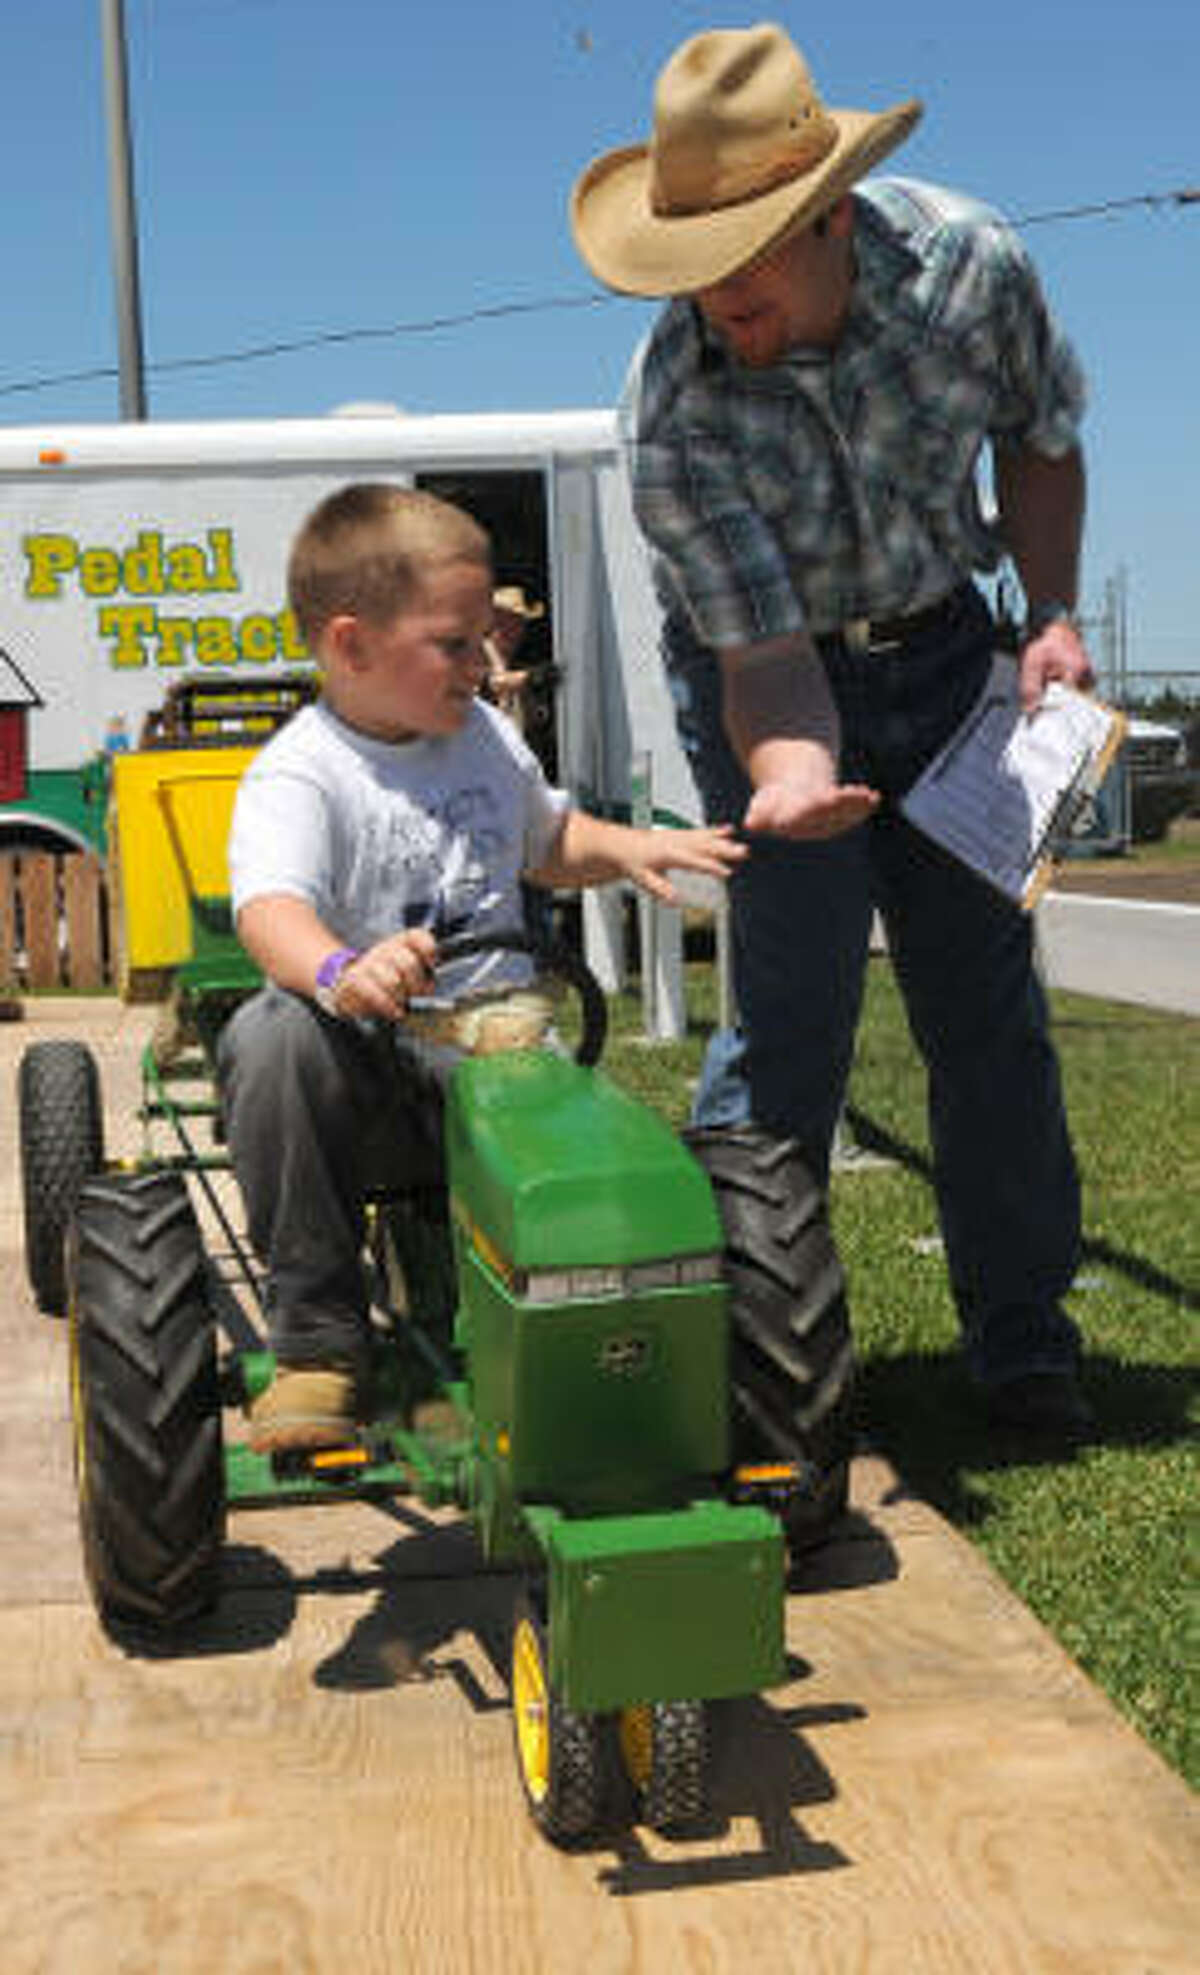 Jeremy Welch, 6, greets Ky Dobbson after crossing the finish line in the pedal-tractor pull competition at the Galveston County Fair and Rodeo in Hitchcock. The event opened Friday and runs through April 25.